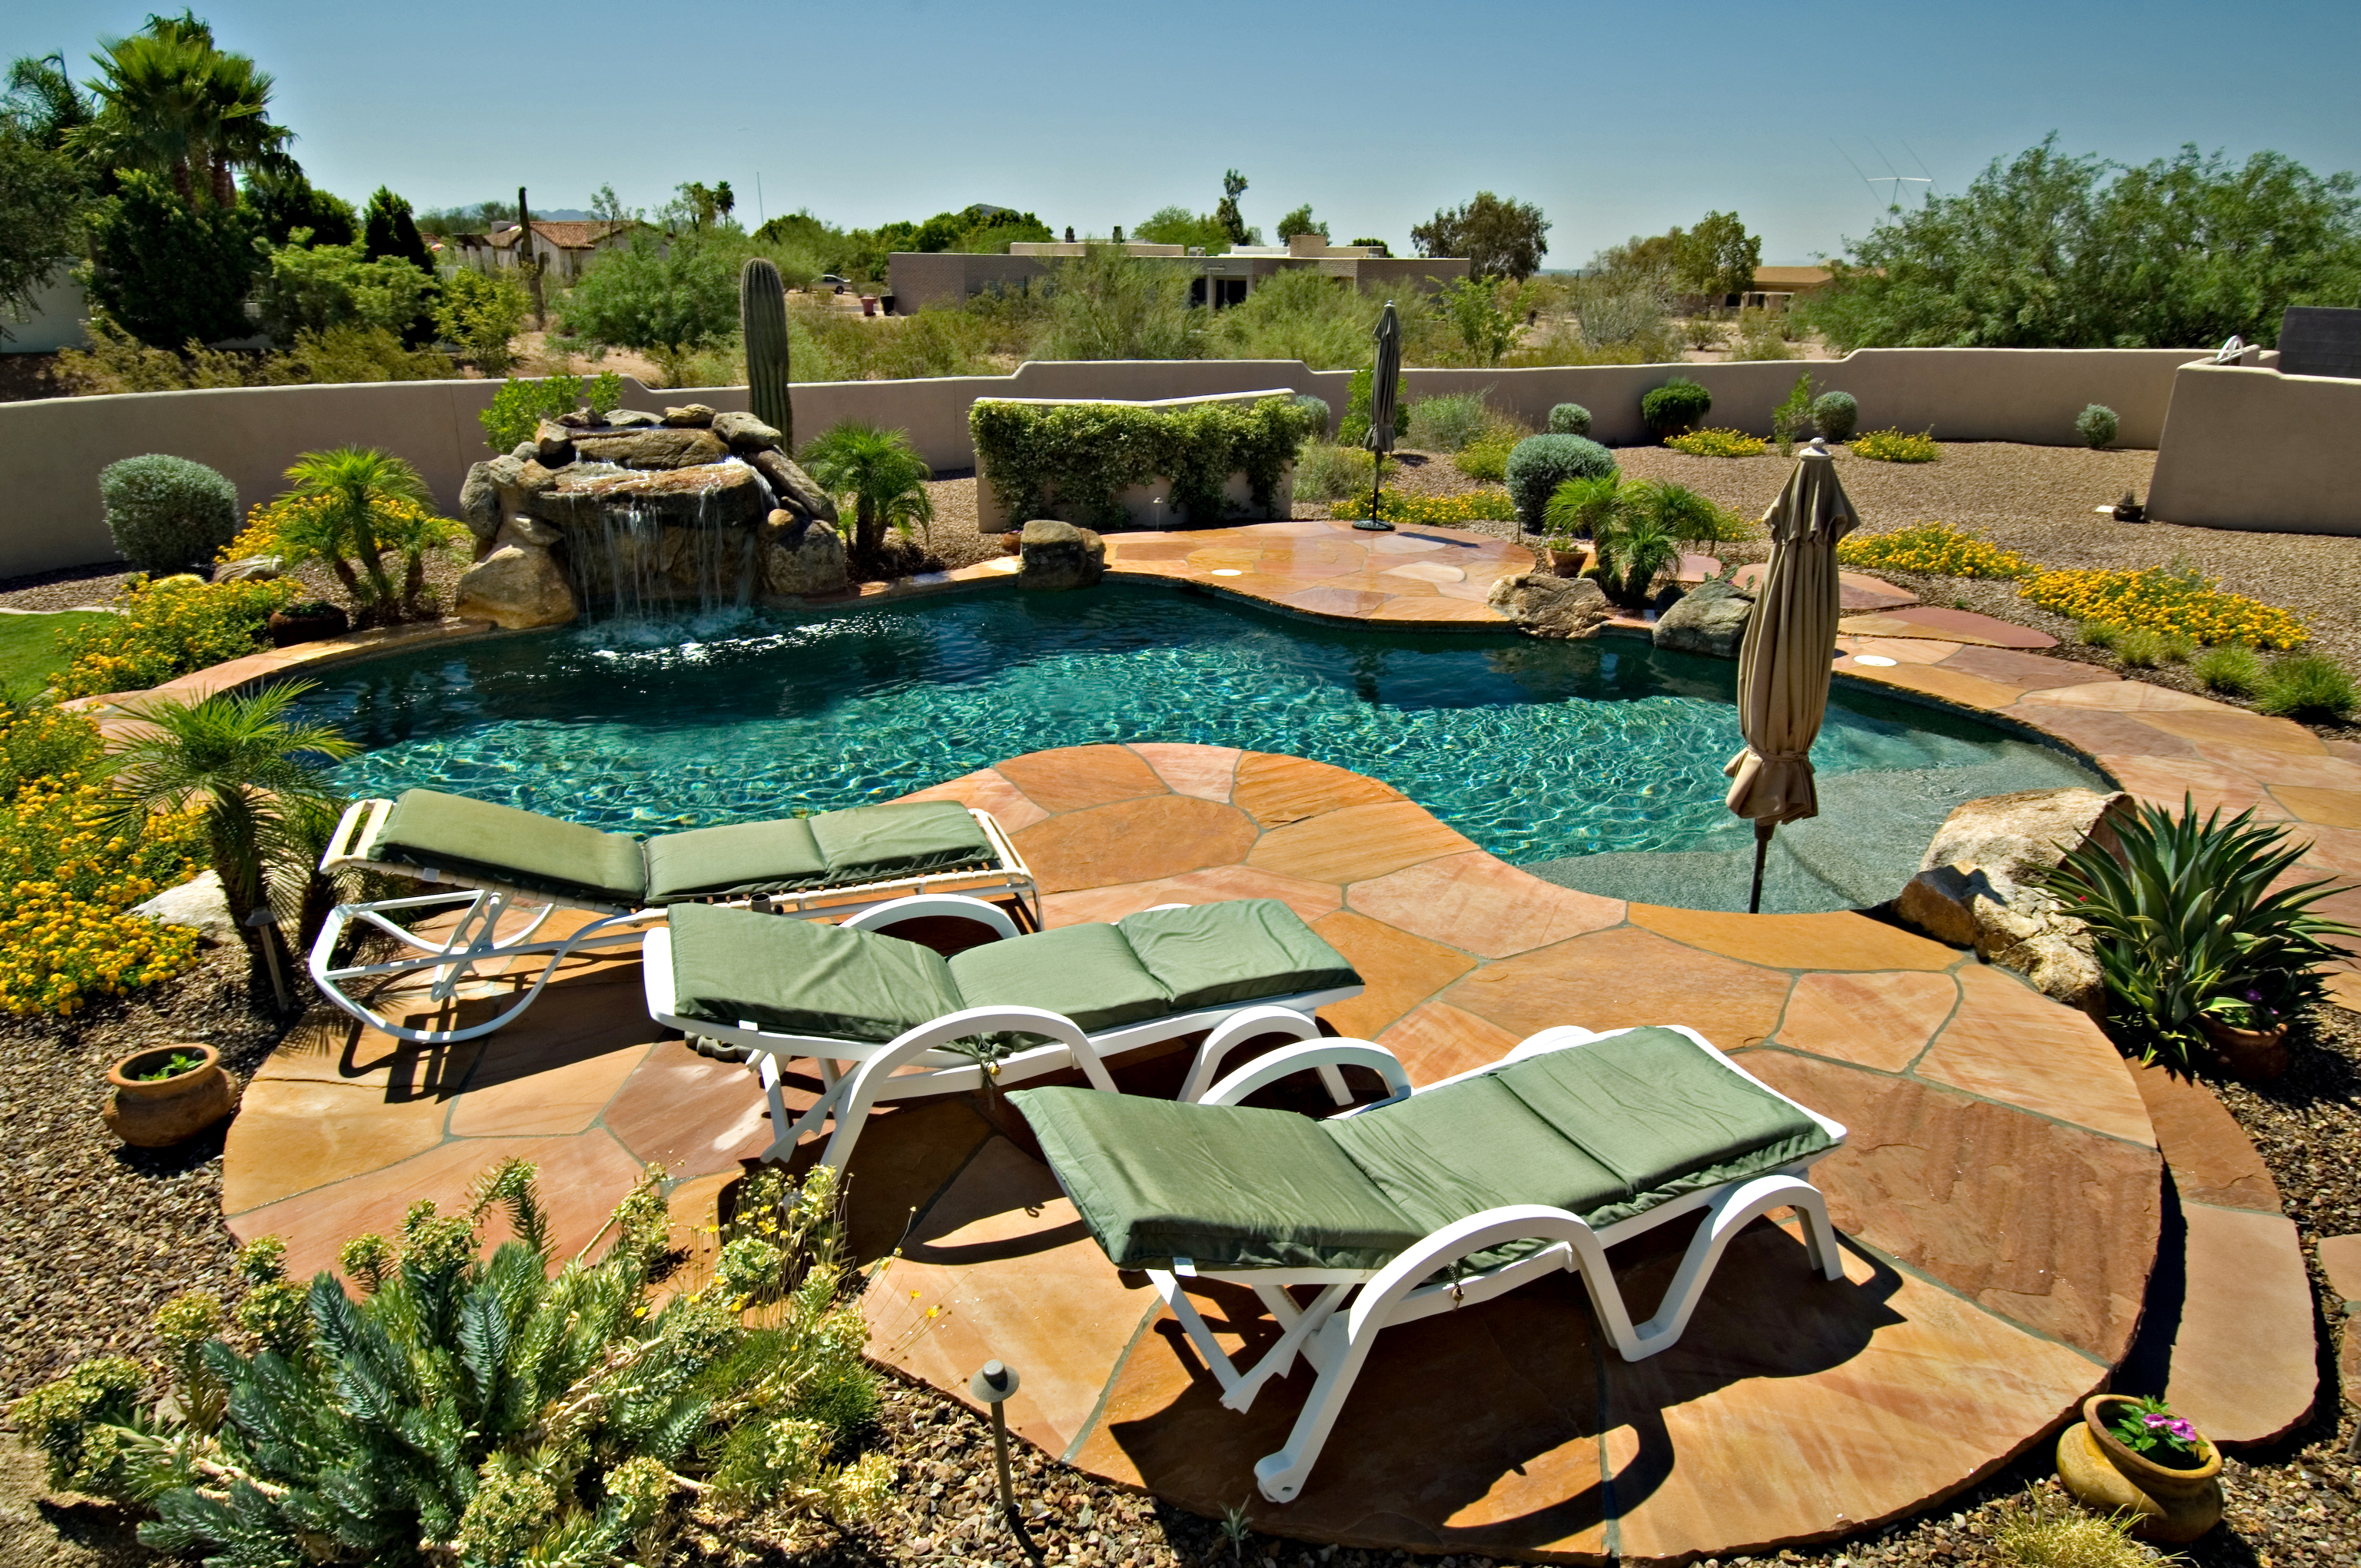 Backyard Pool Landscaping Ideas | HomesFeed on Backyard Pool Landscape Designs id=13889